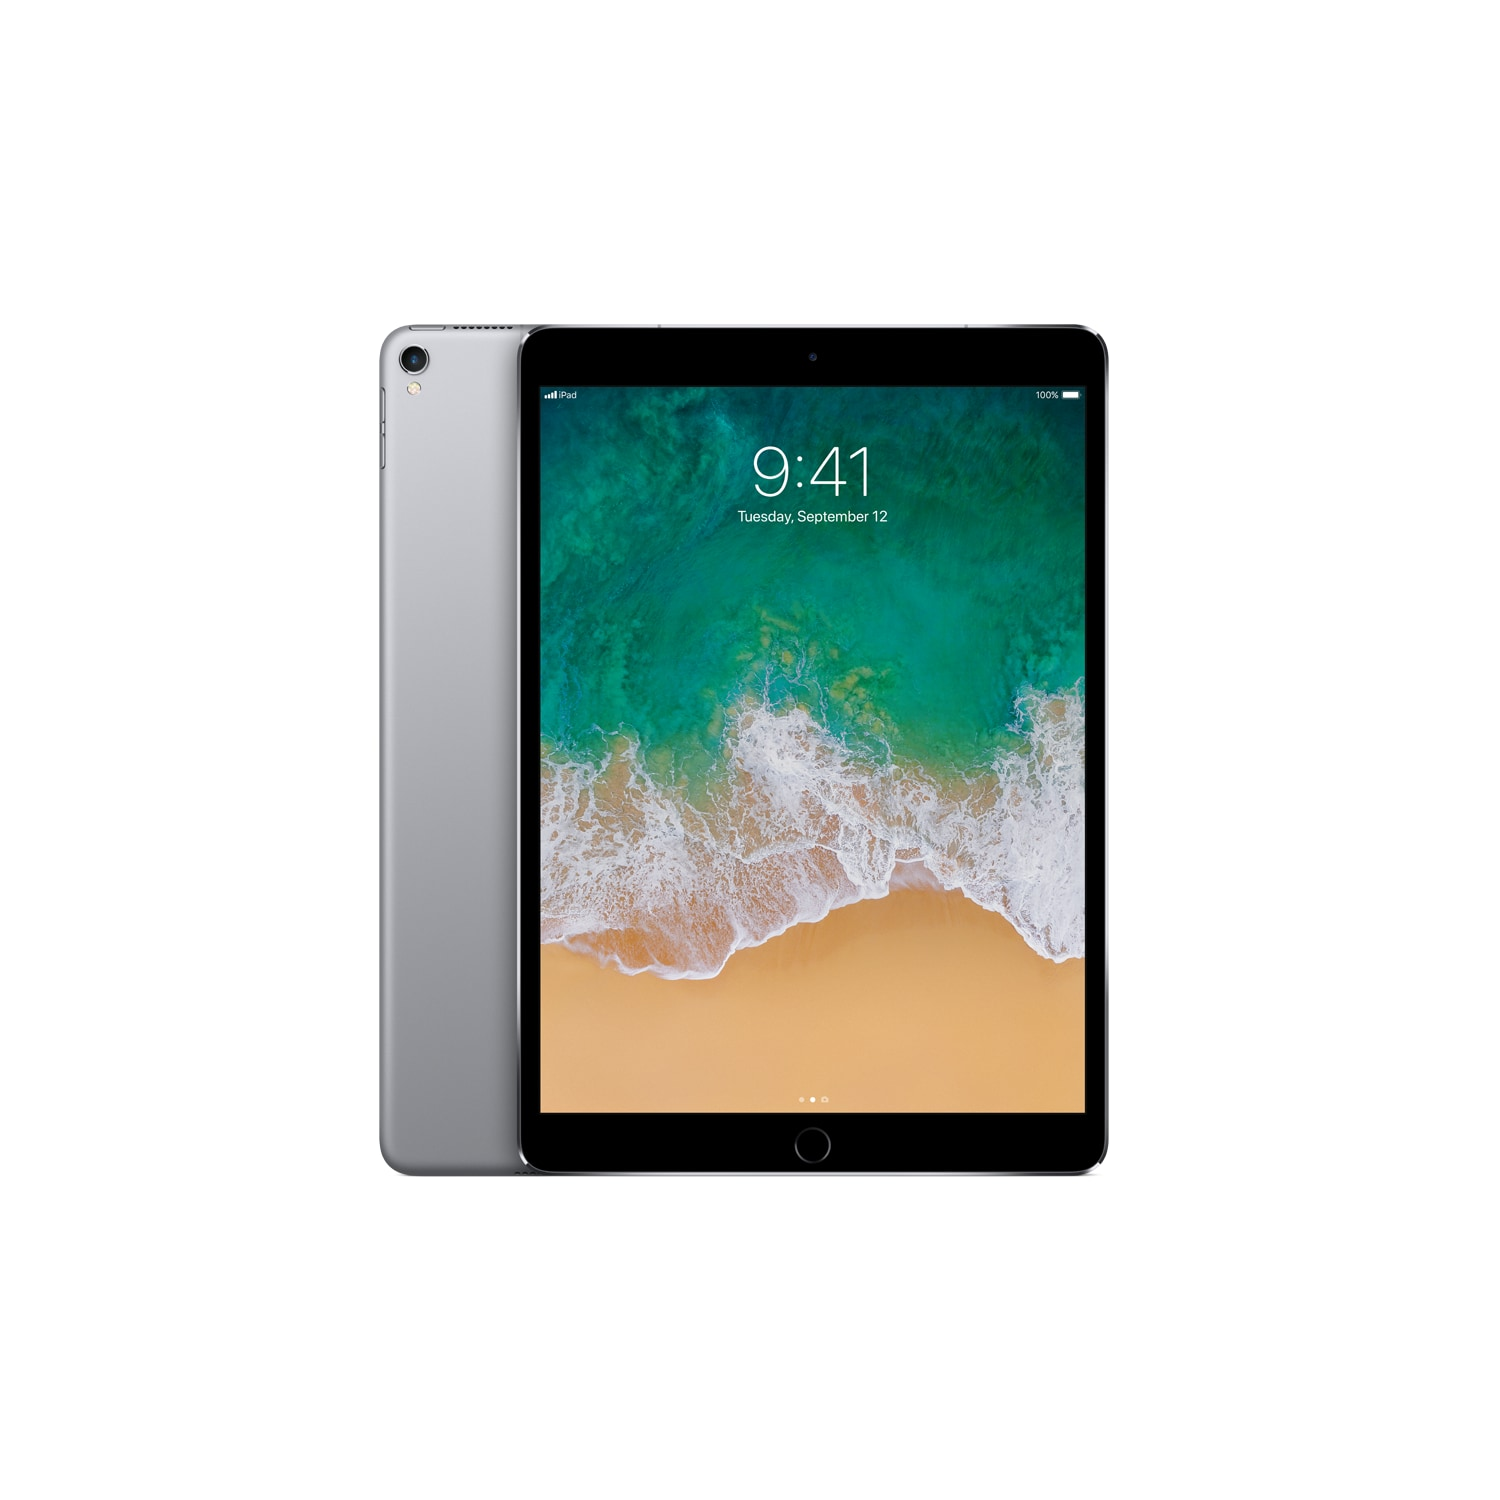 Tablet APPLE iPad Pro 10.5 Wi-Fi+Cellular 512GB Gwiezdna szarość MPME2FD/A